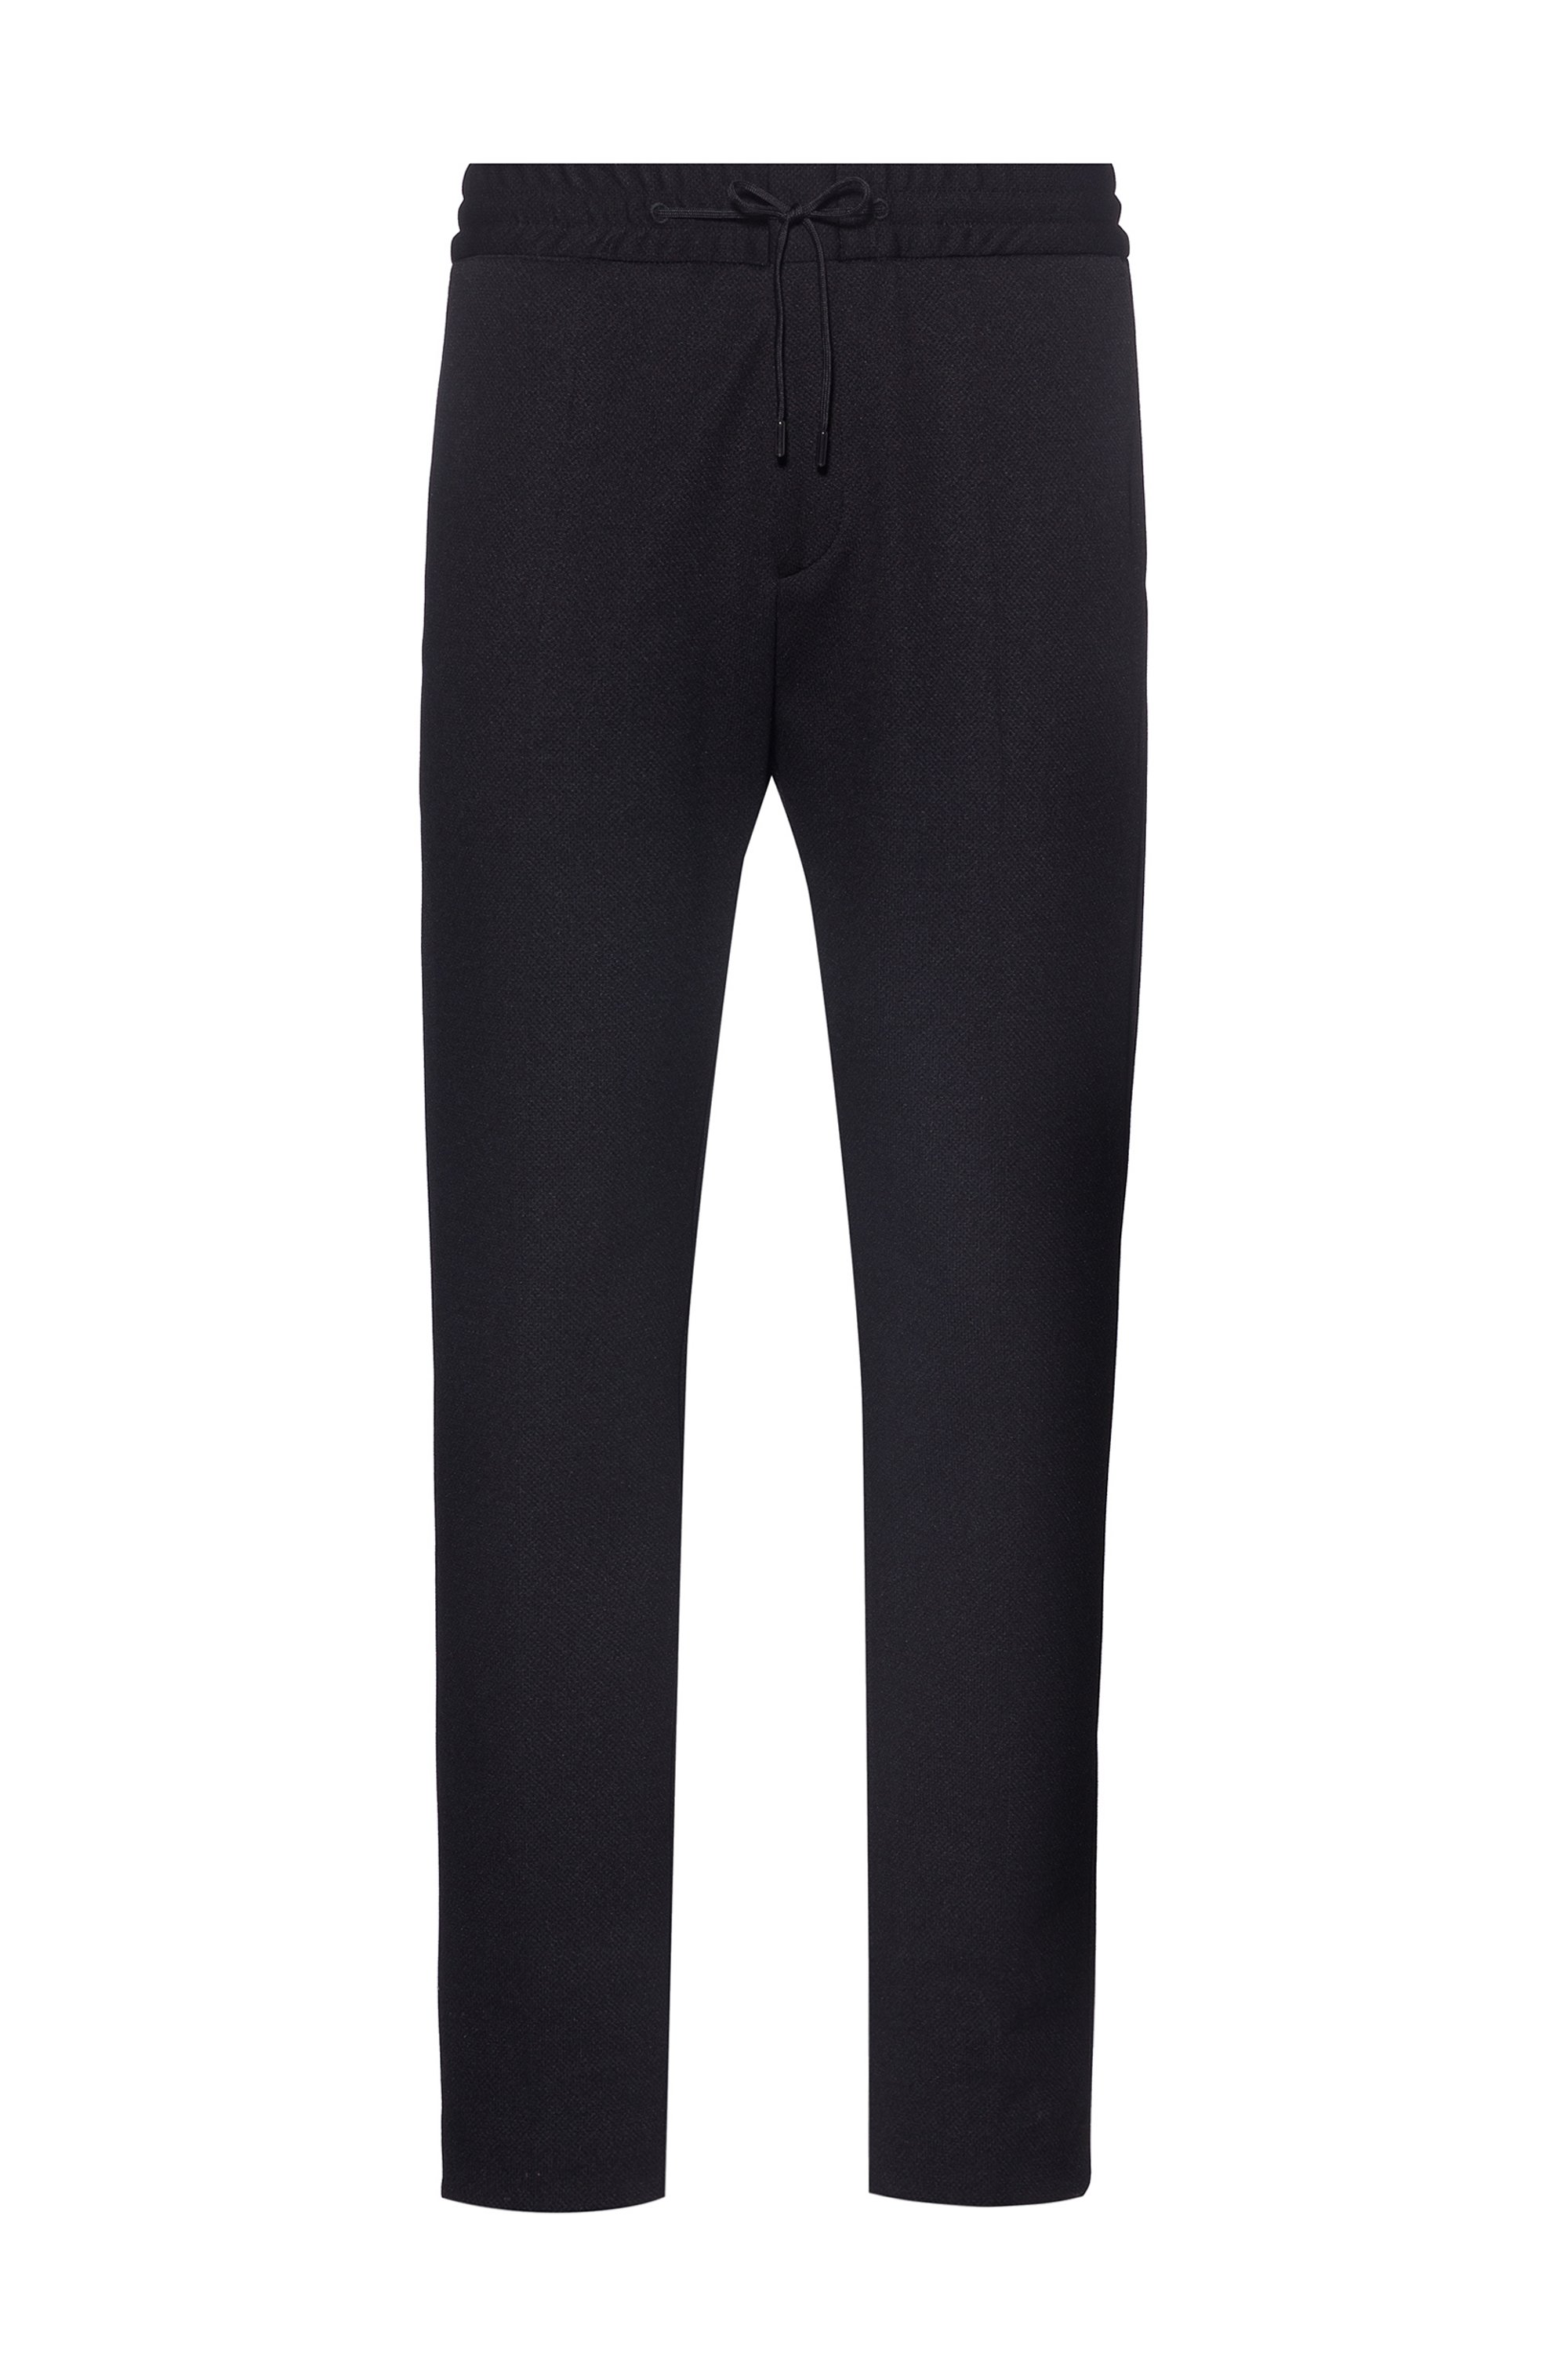 Extra-slim-fit trousers in structured stretch fabric, Black